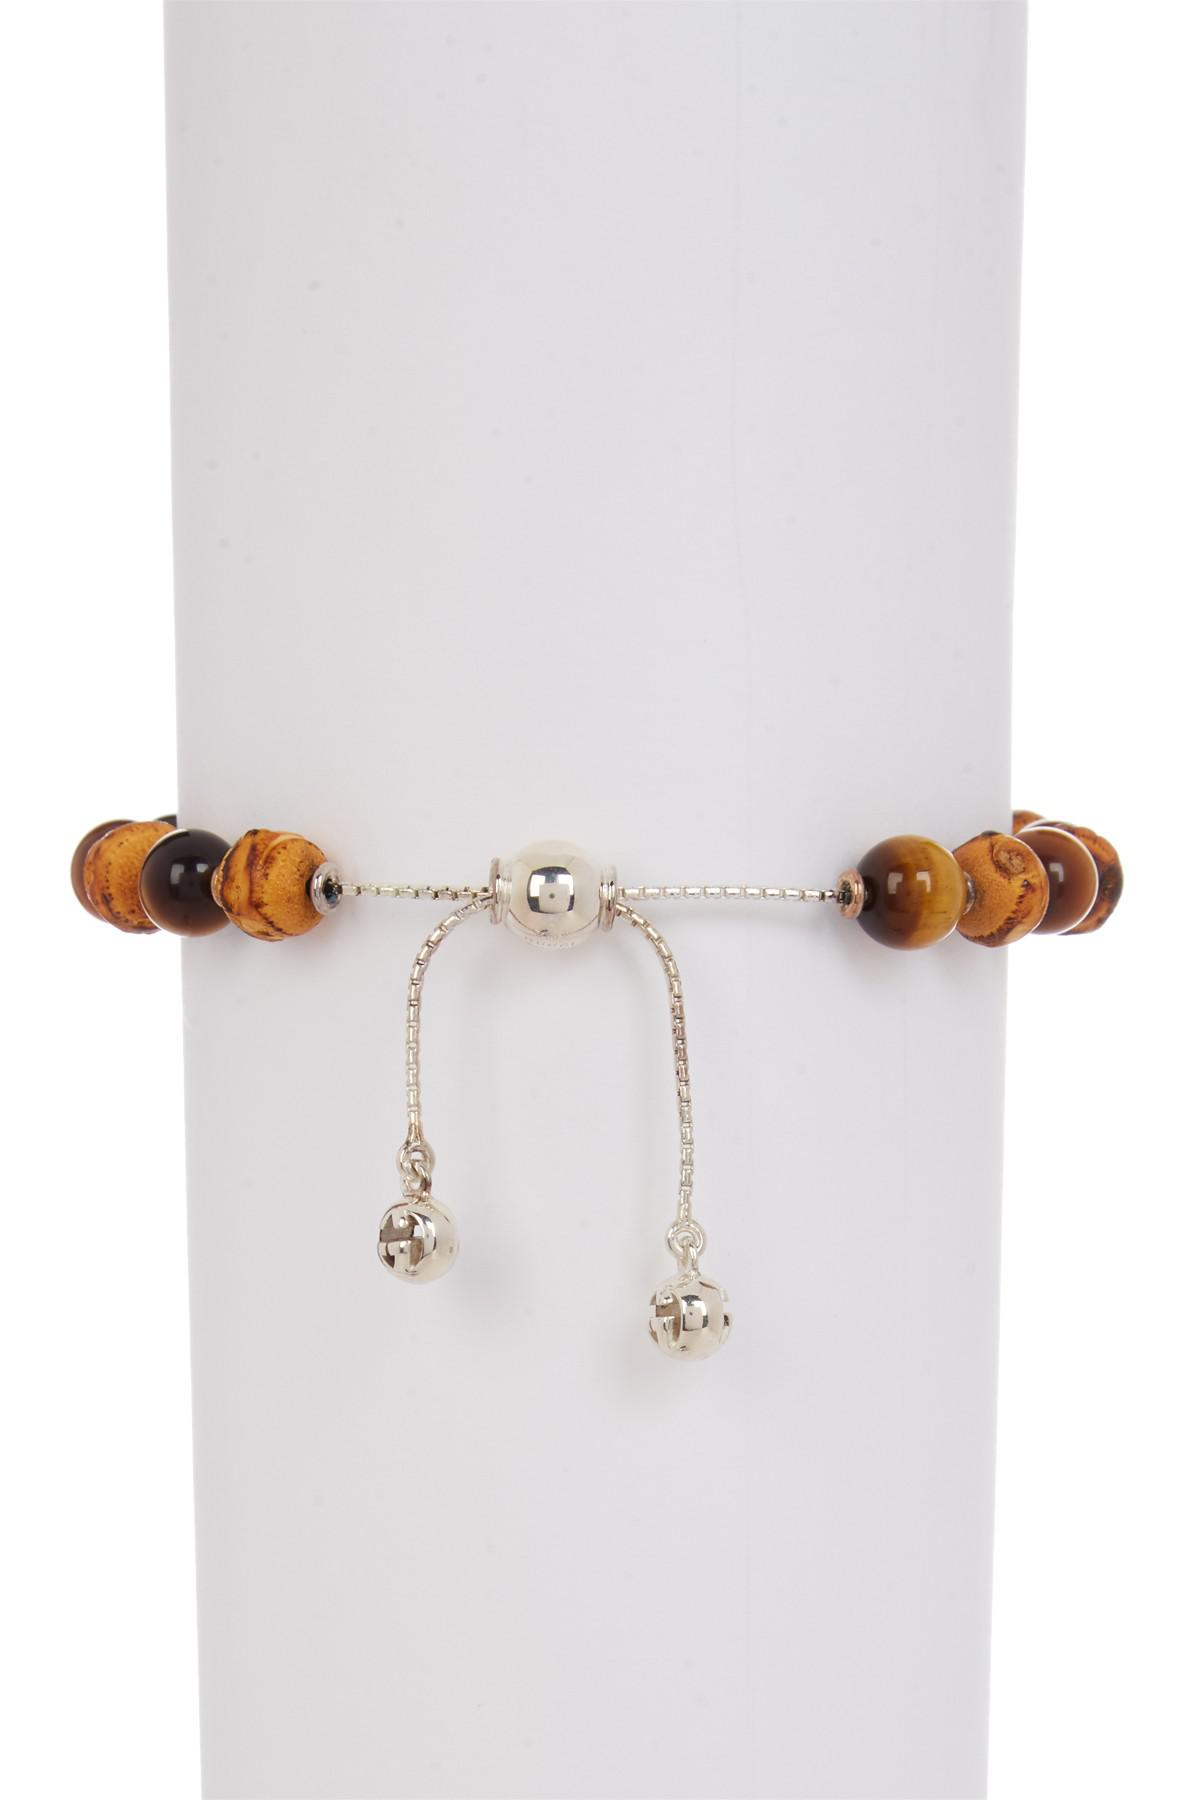 b099e7015 Lyst - Gucci Sterling Silver Beaded Bamboo Wood & Tiger's Eye ...